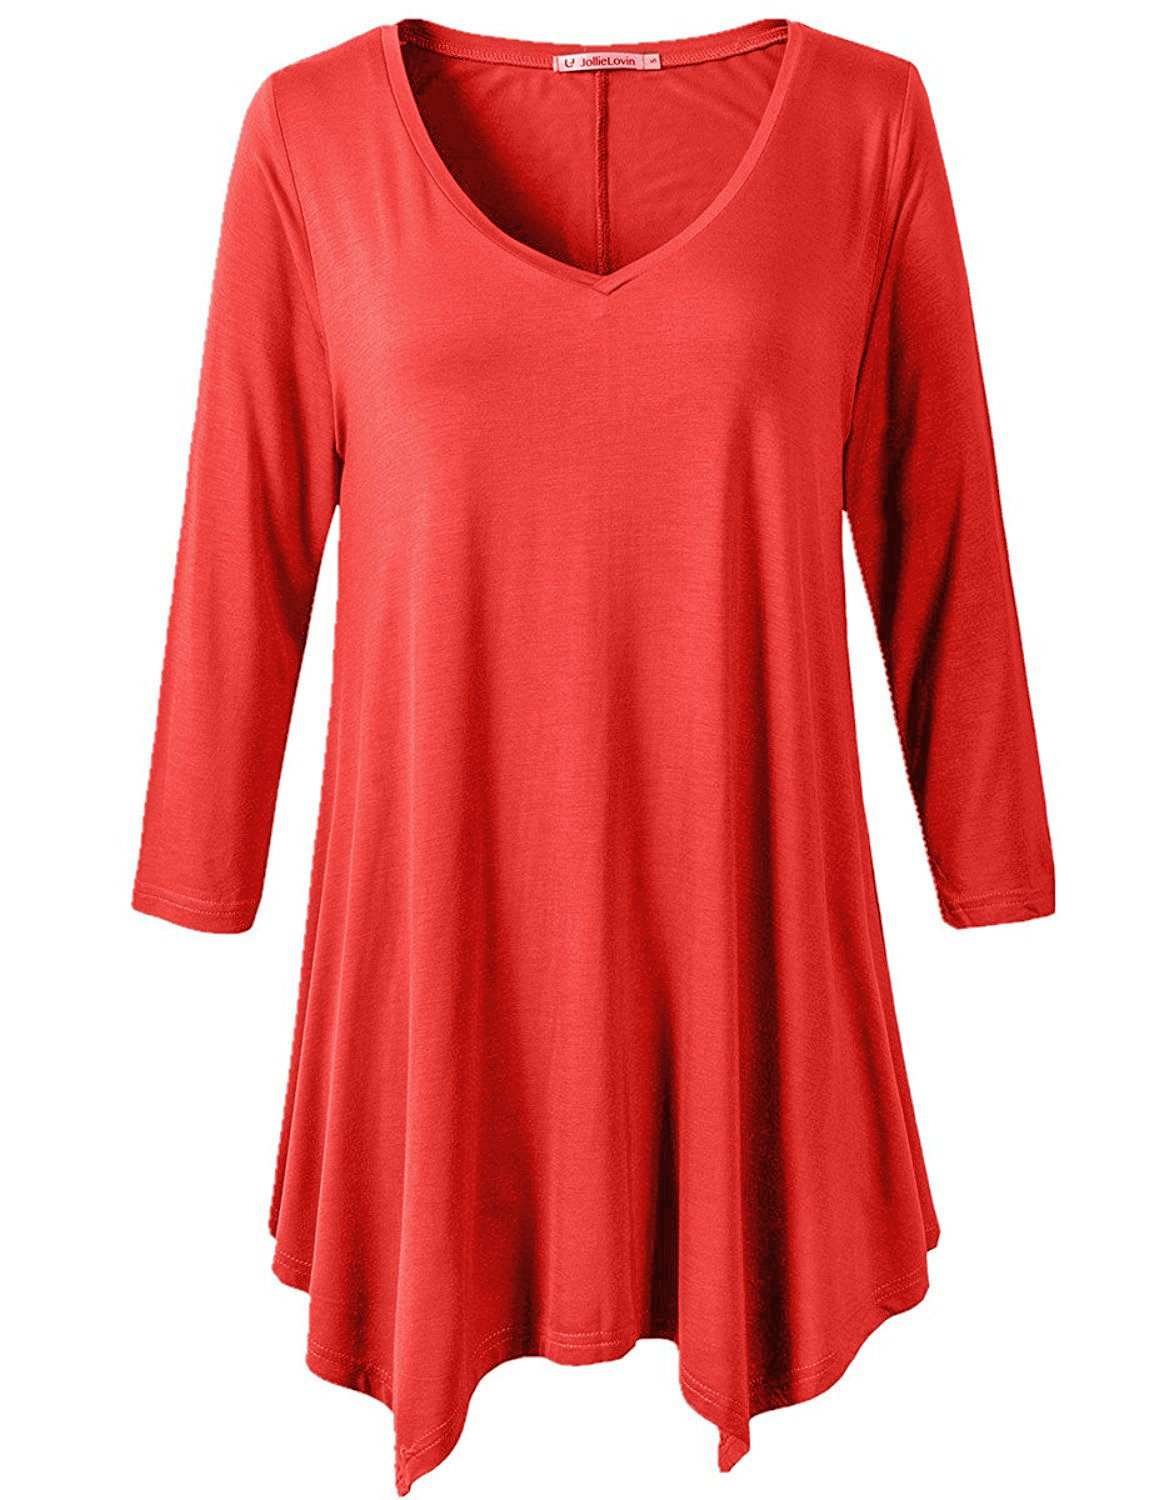 JollieLovin Womens Plus Size 3/4 Sleeve Loose-fit T Shirt for Leggings Tunic Top (Red, 1X)